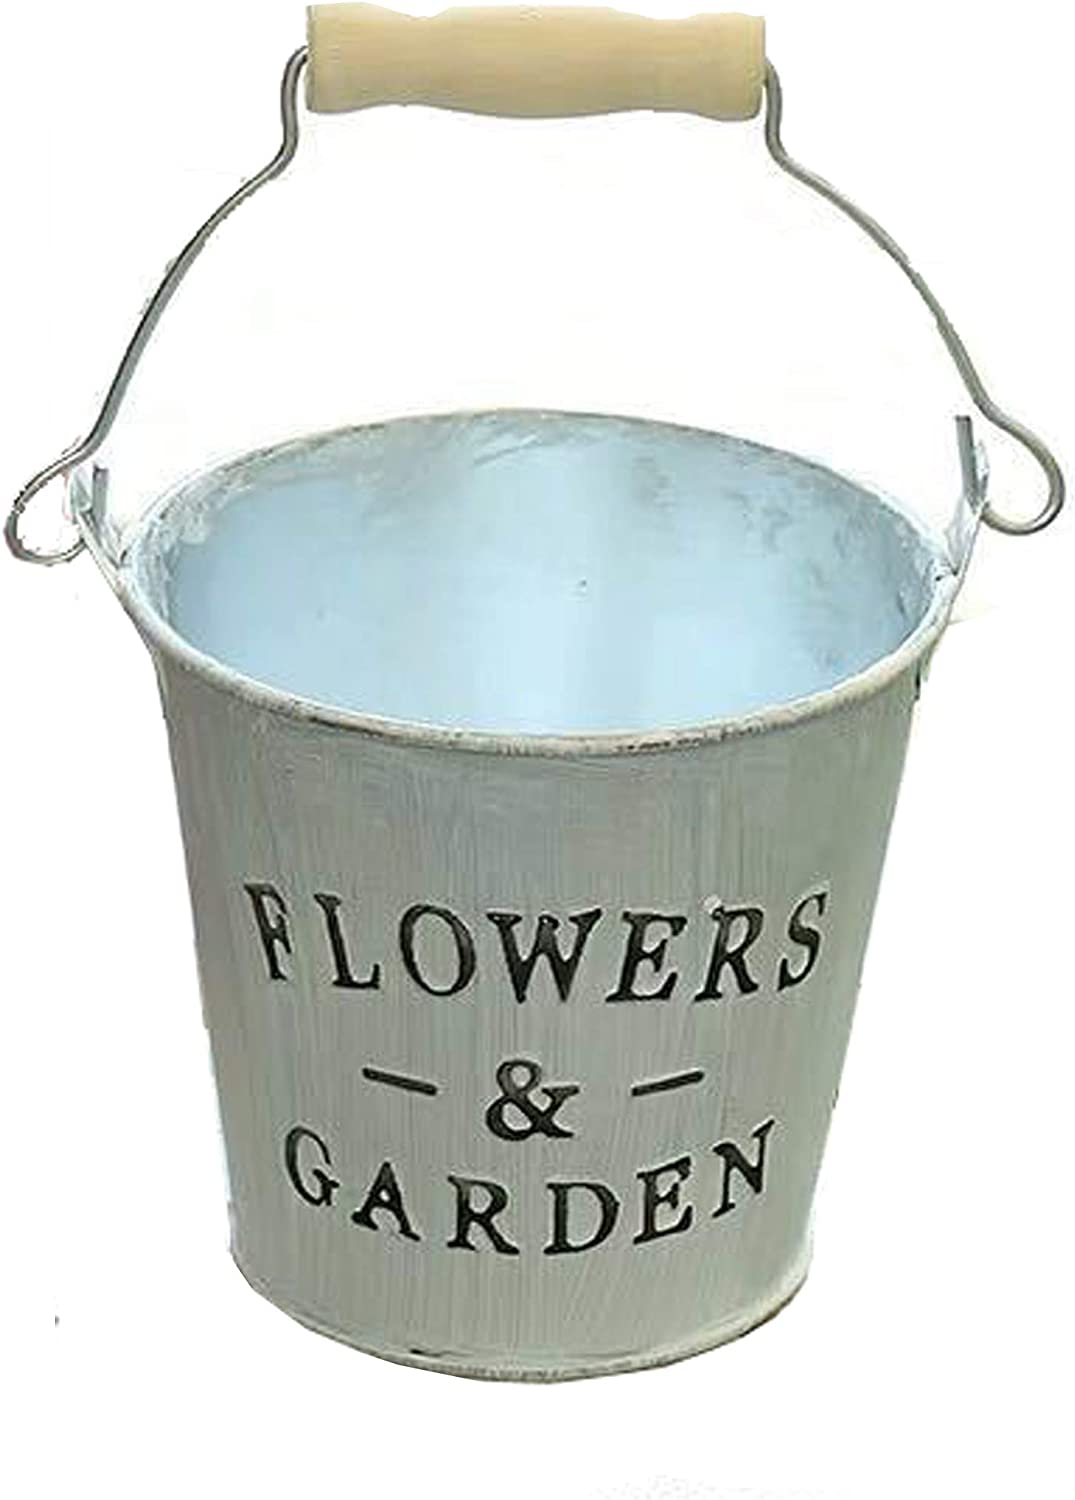 Rustic Mini Tin Garden Bucket Planter with Wood Handle, Metal Flower Pot Succulent Container Planter for Home and Office Décor.